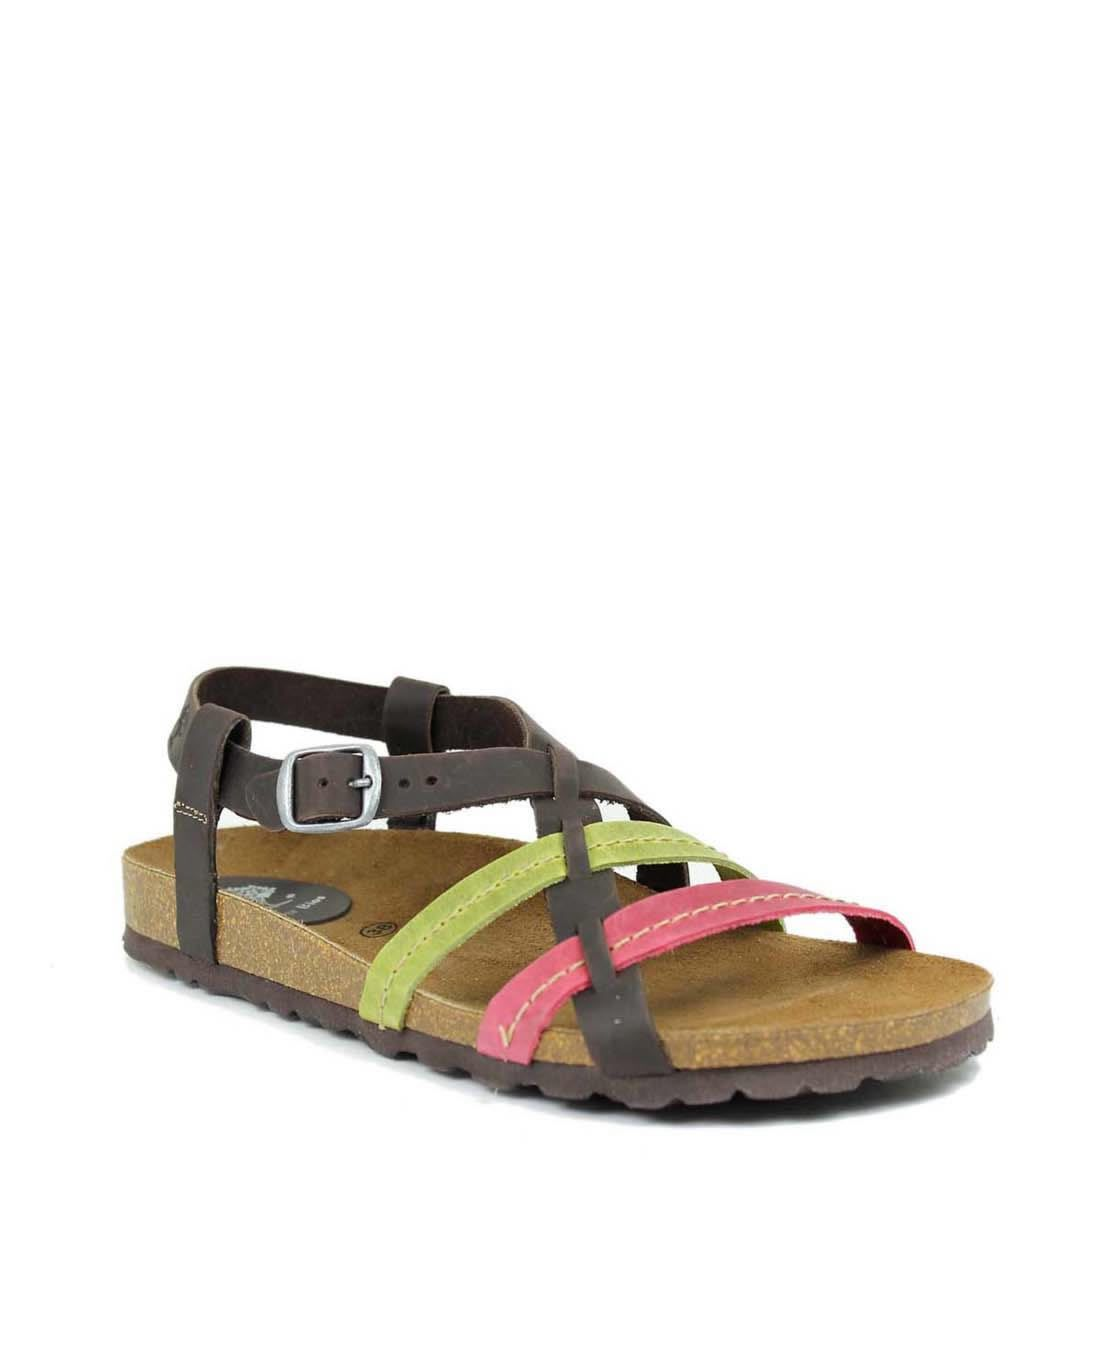 bda5f2a22058 Sandalias planas INTER BIOS multicolor 7178 Flat Sandals